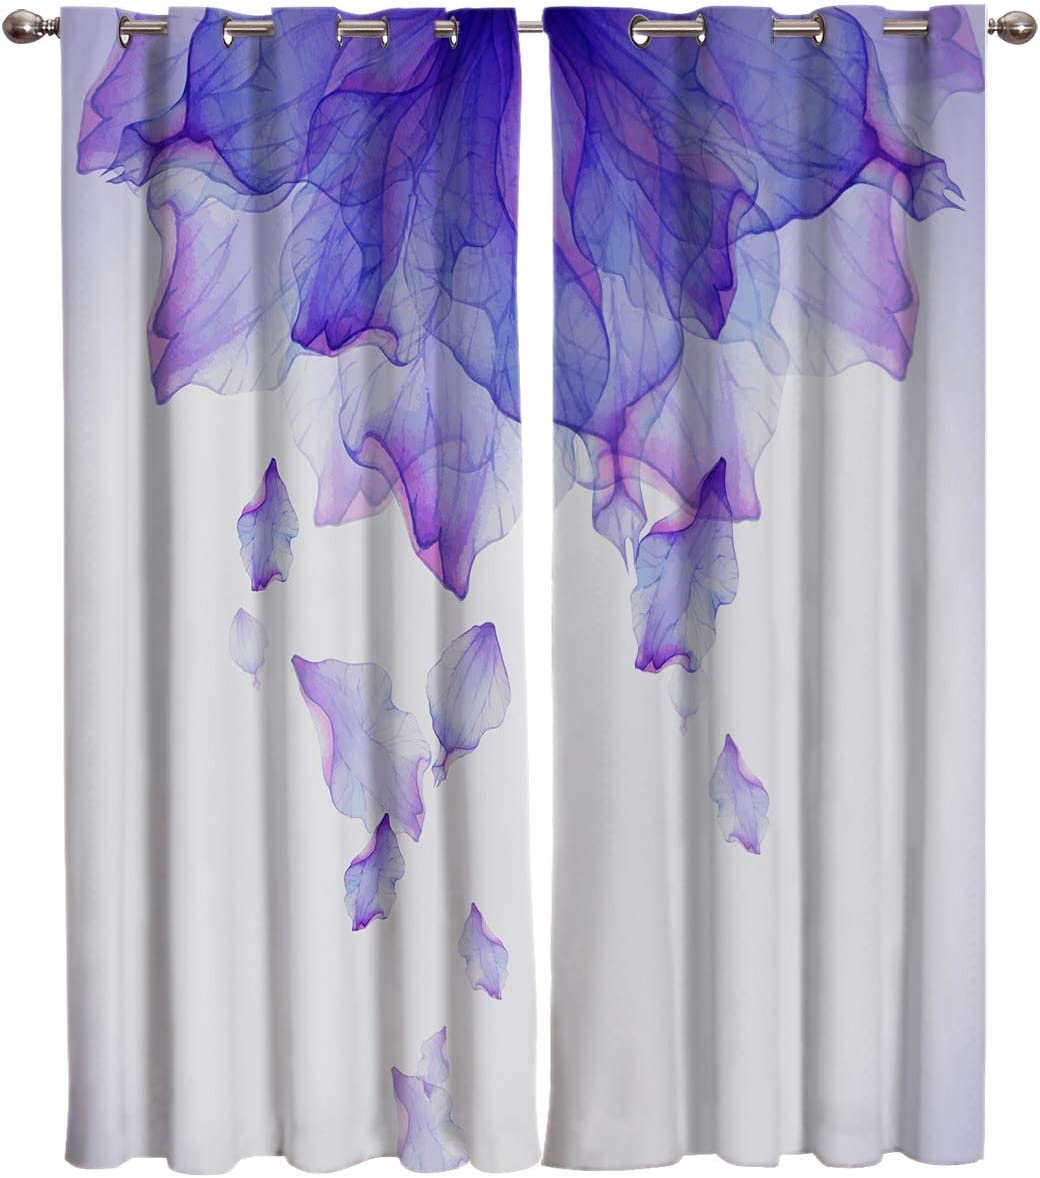 FortuneHouse8 Blackout Curtains Thermal Insulated Purple Mandala Ink Watercolor Romantic Room Drapes Window Curtain for Bedroom Living Room Set of 2 Curtain Panels Home Fashion 52x72inch